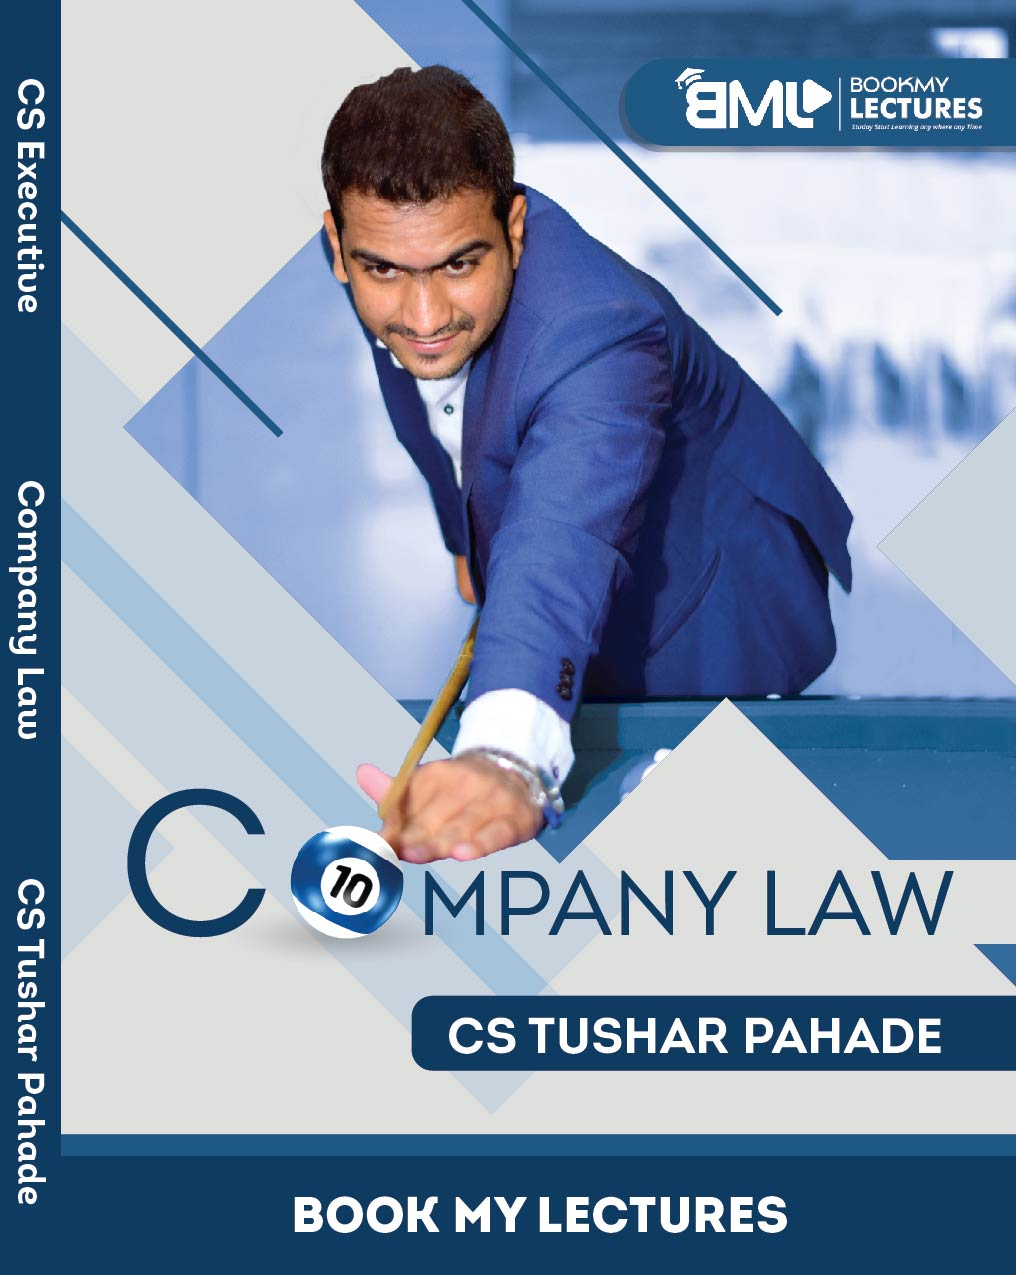 Best CS Executive Classes - Company Law - CS Tushar Pahade